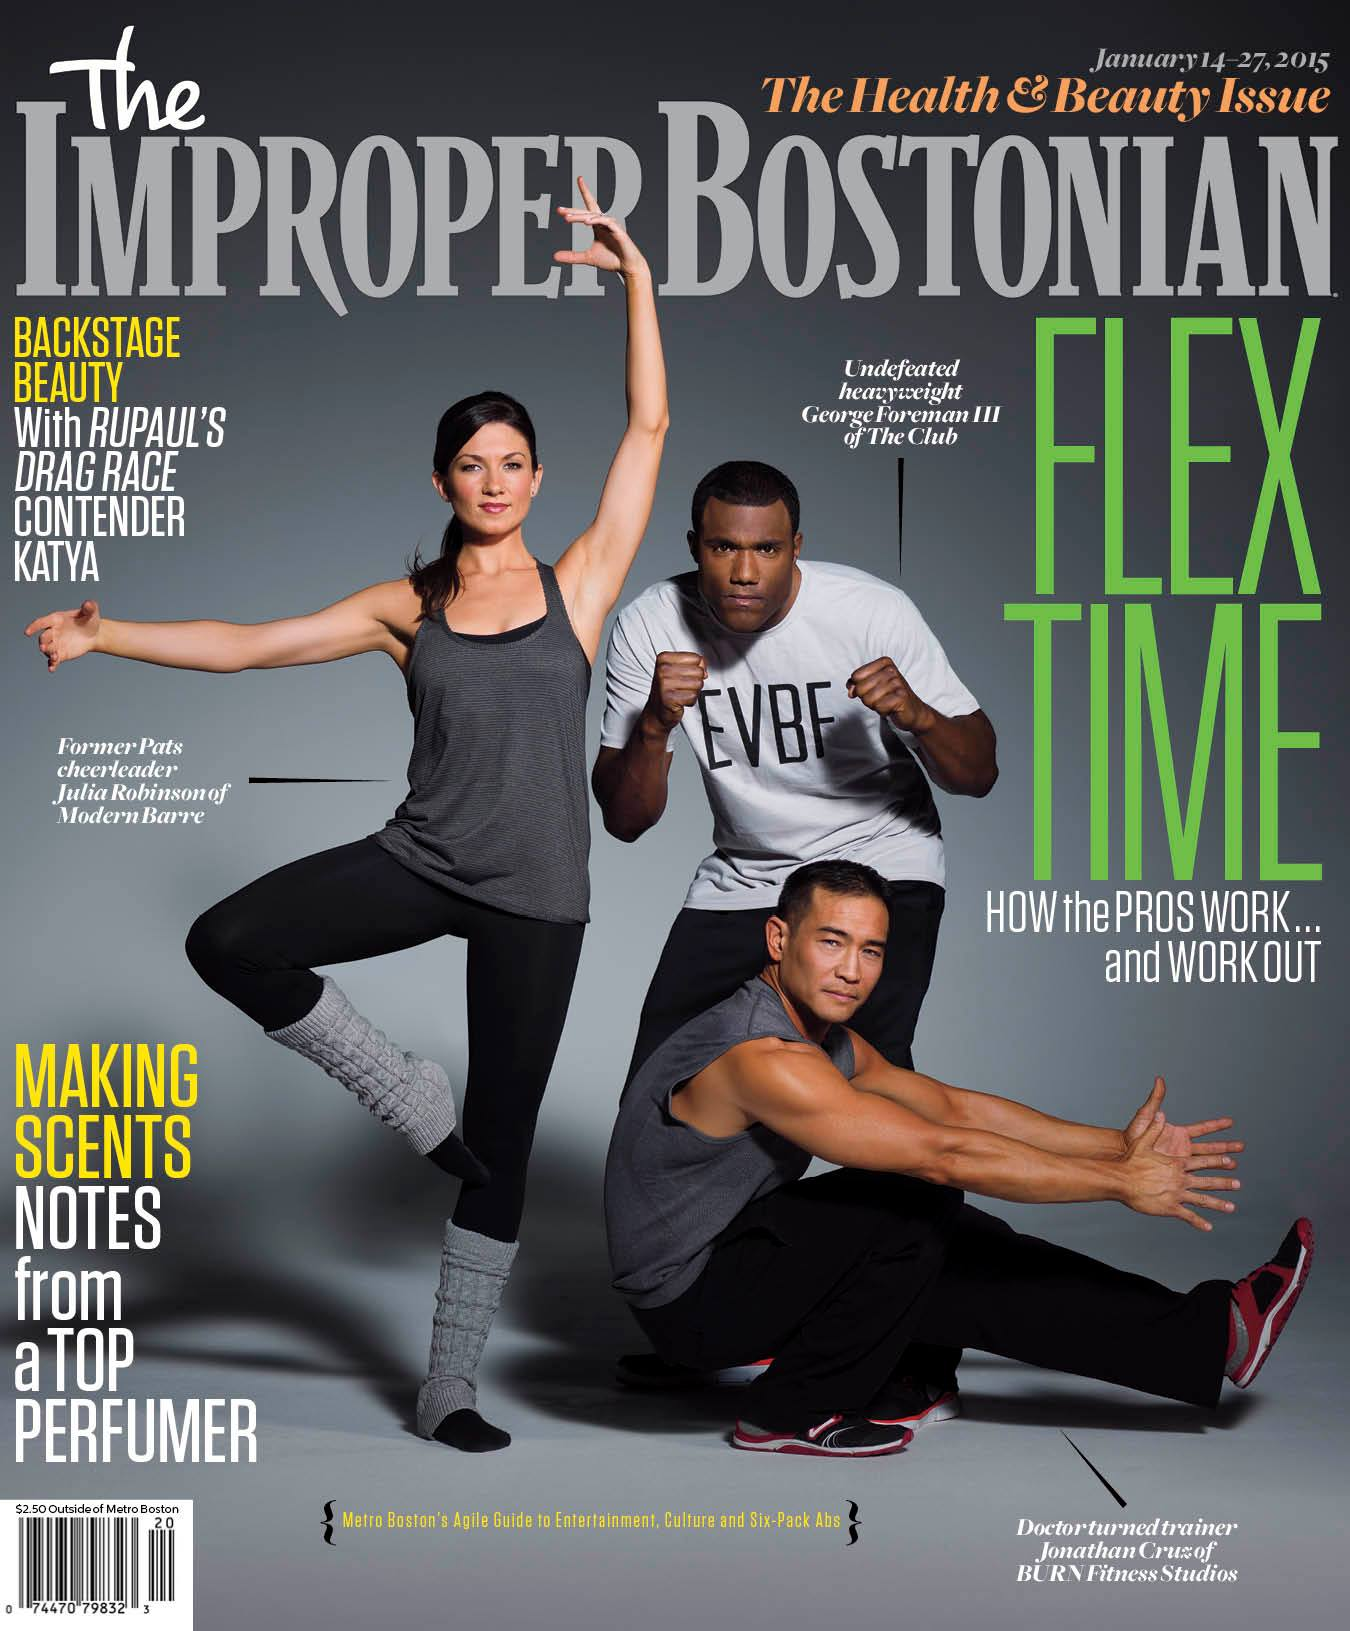 improper-bostonian-burn-fitness-best-trainers